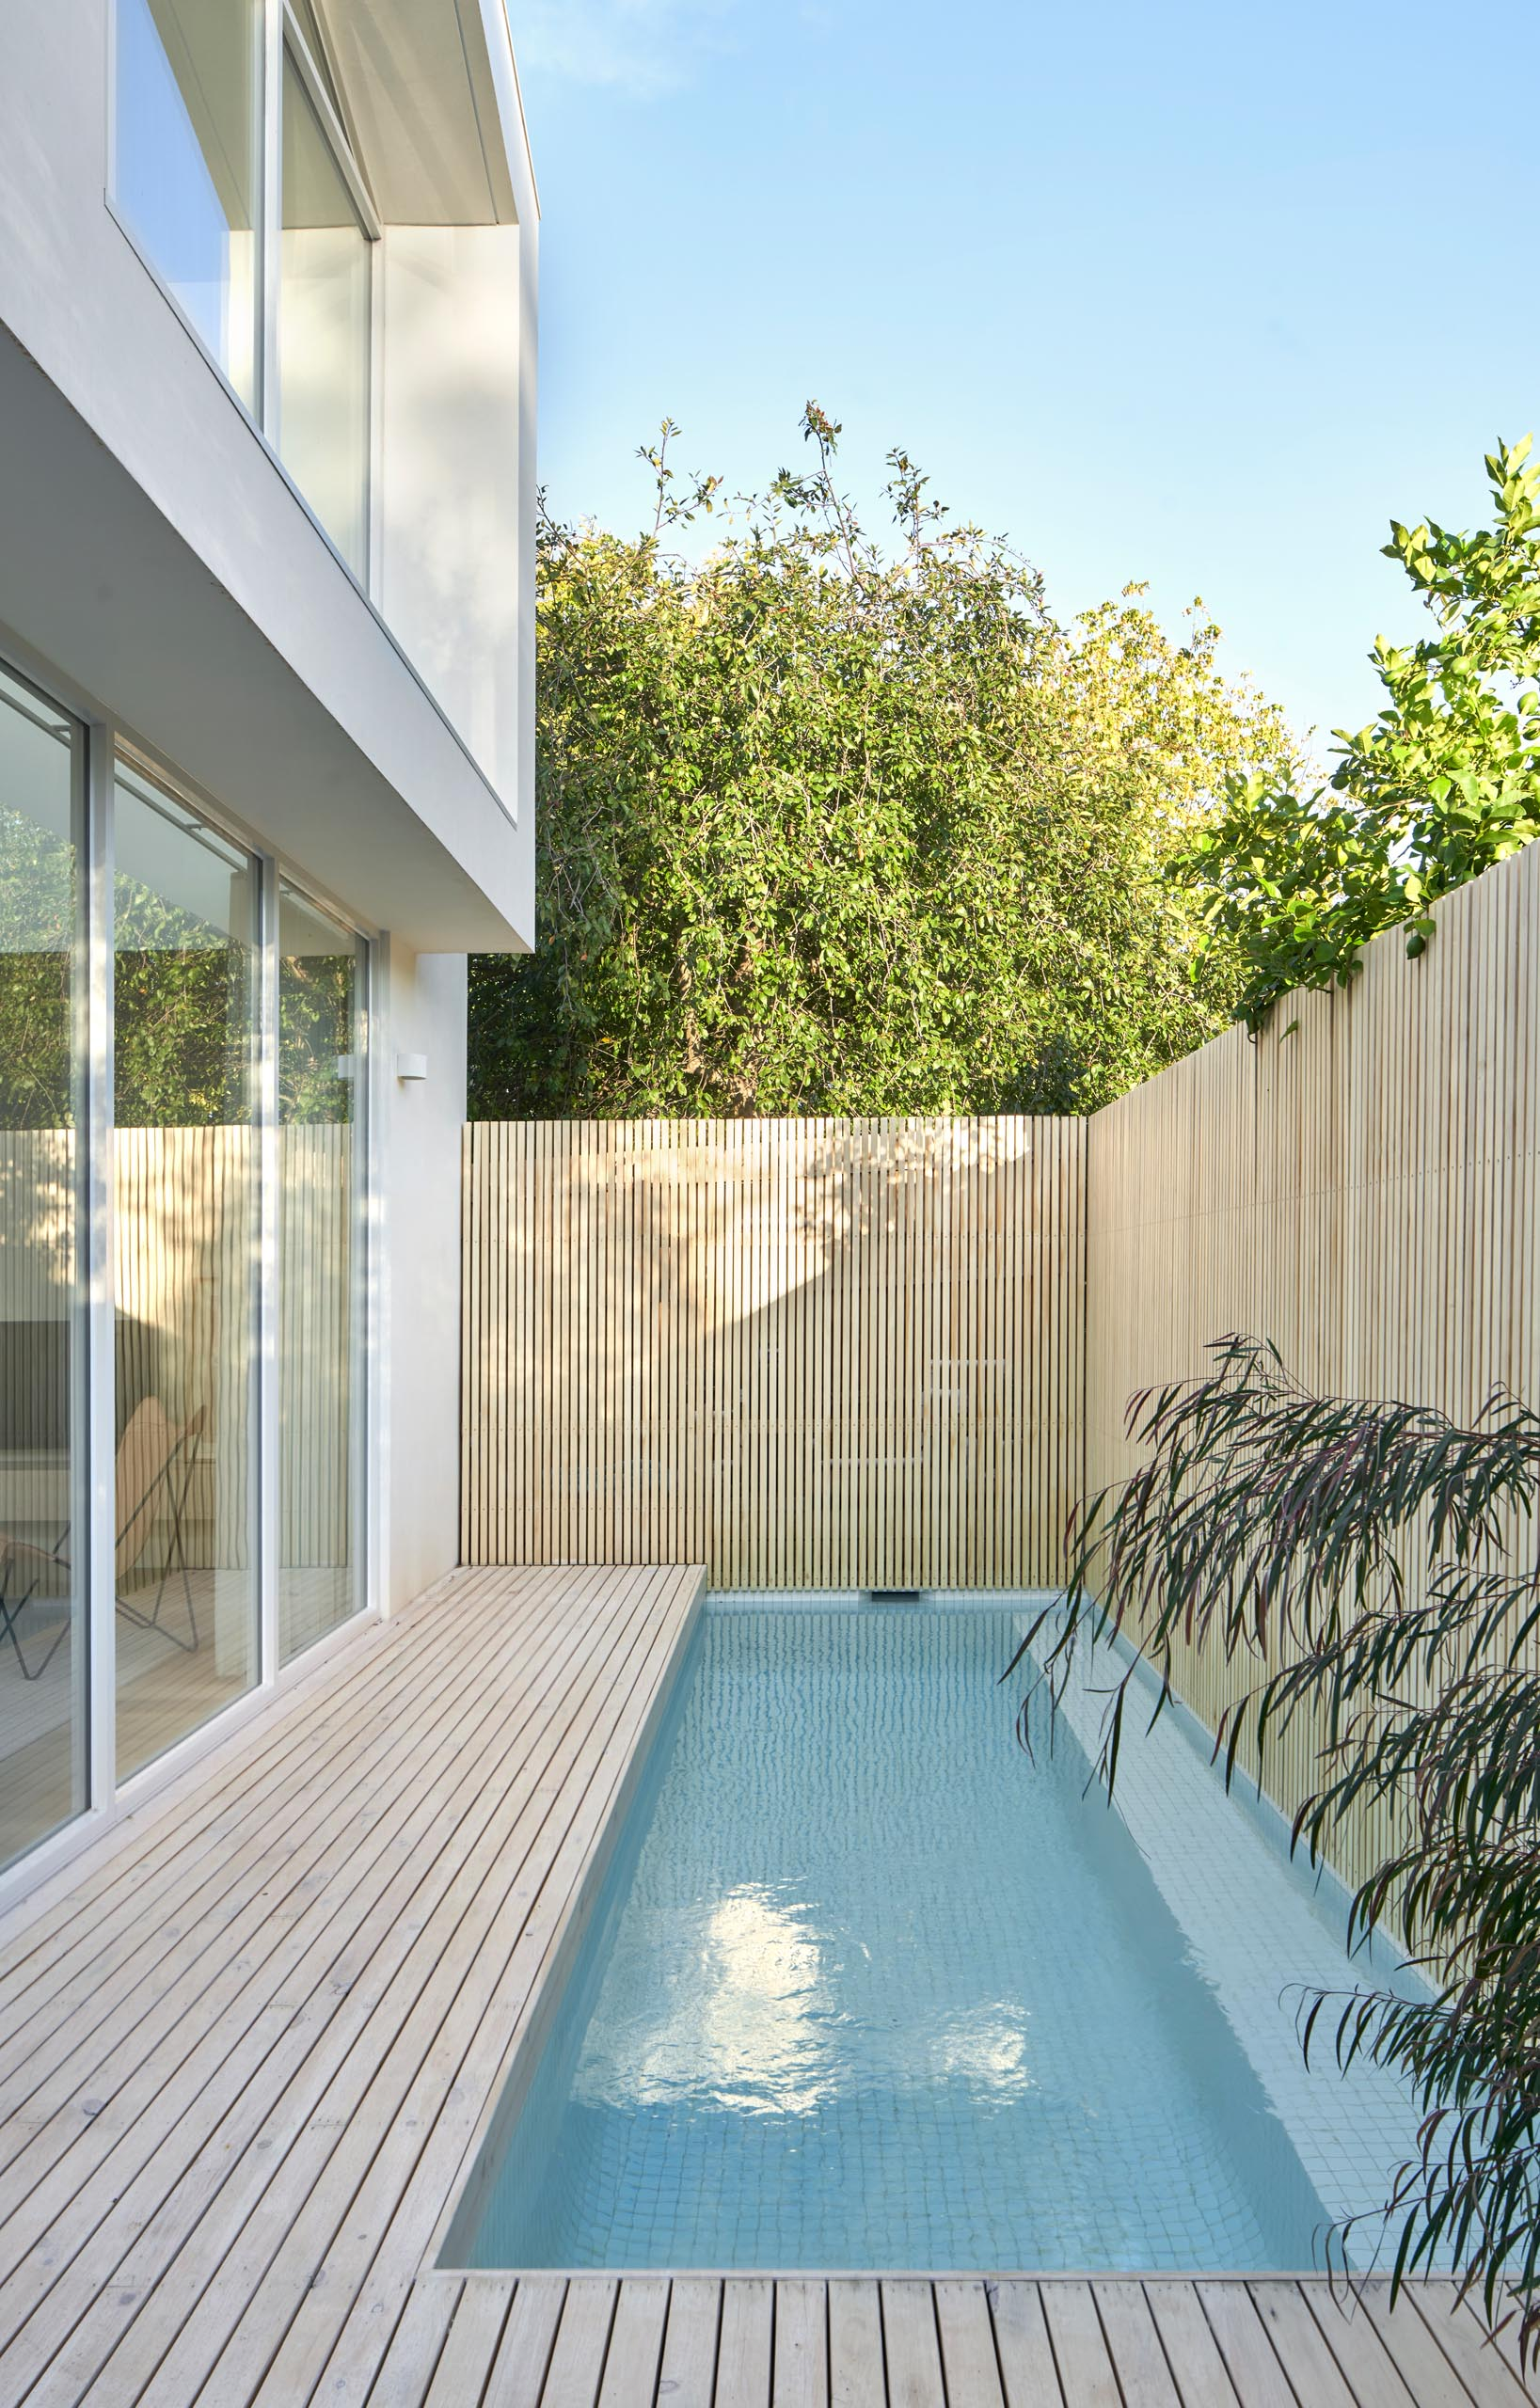 A modern house with a small plunge pool and a fence for privacy.